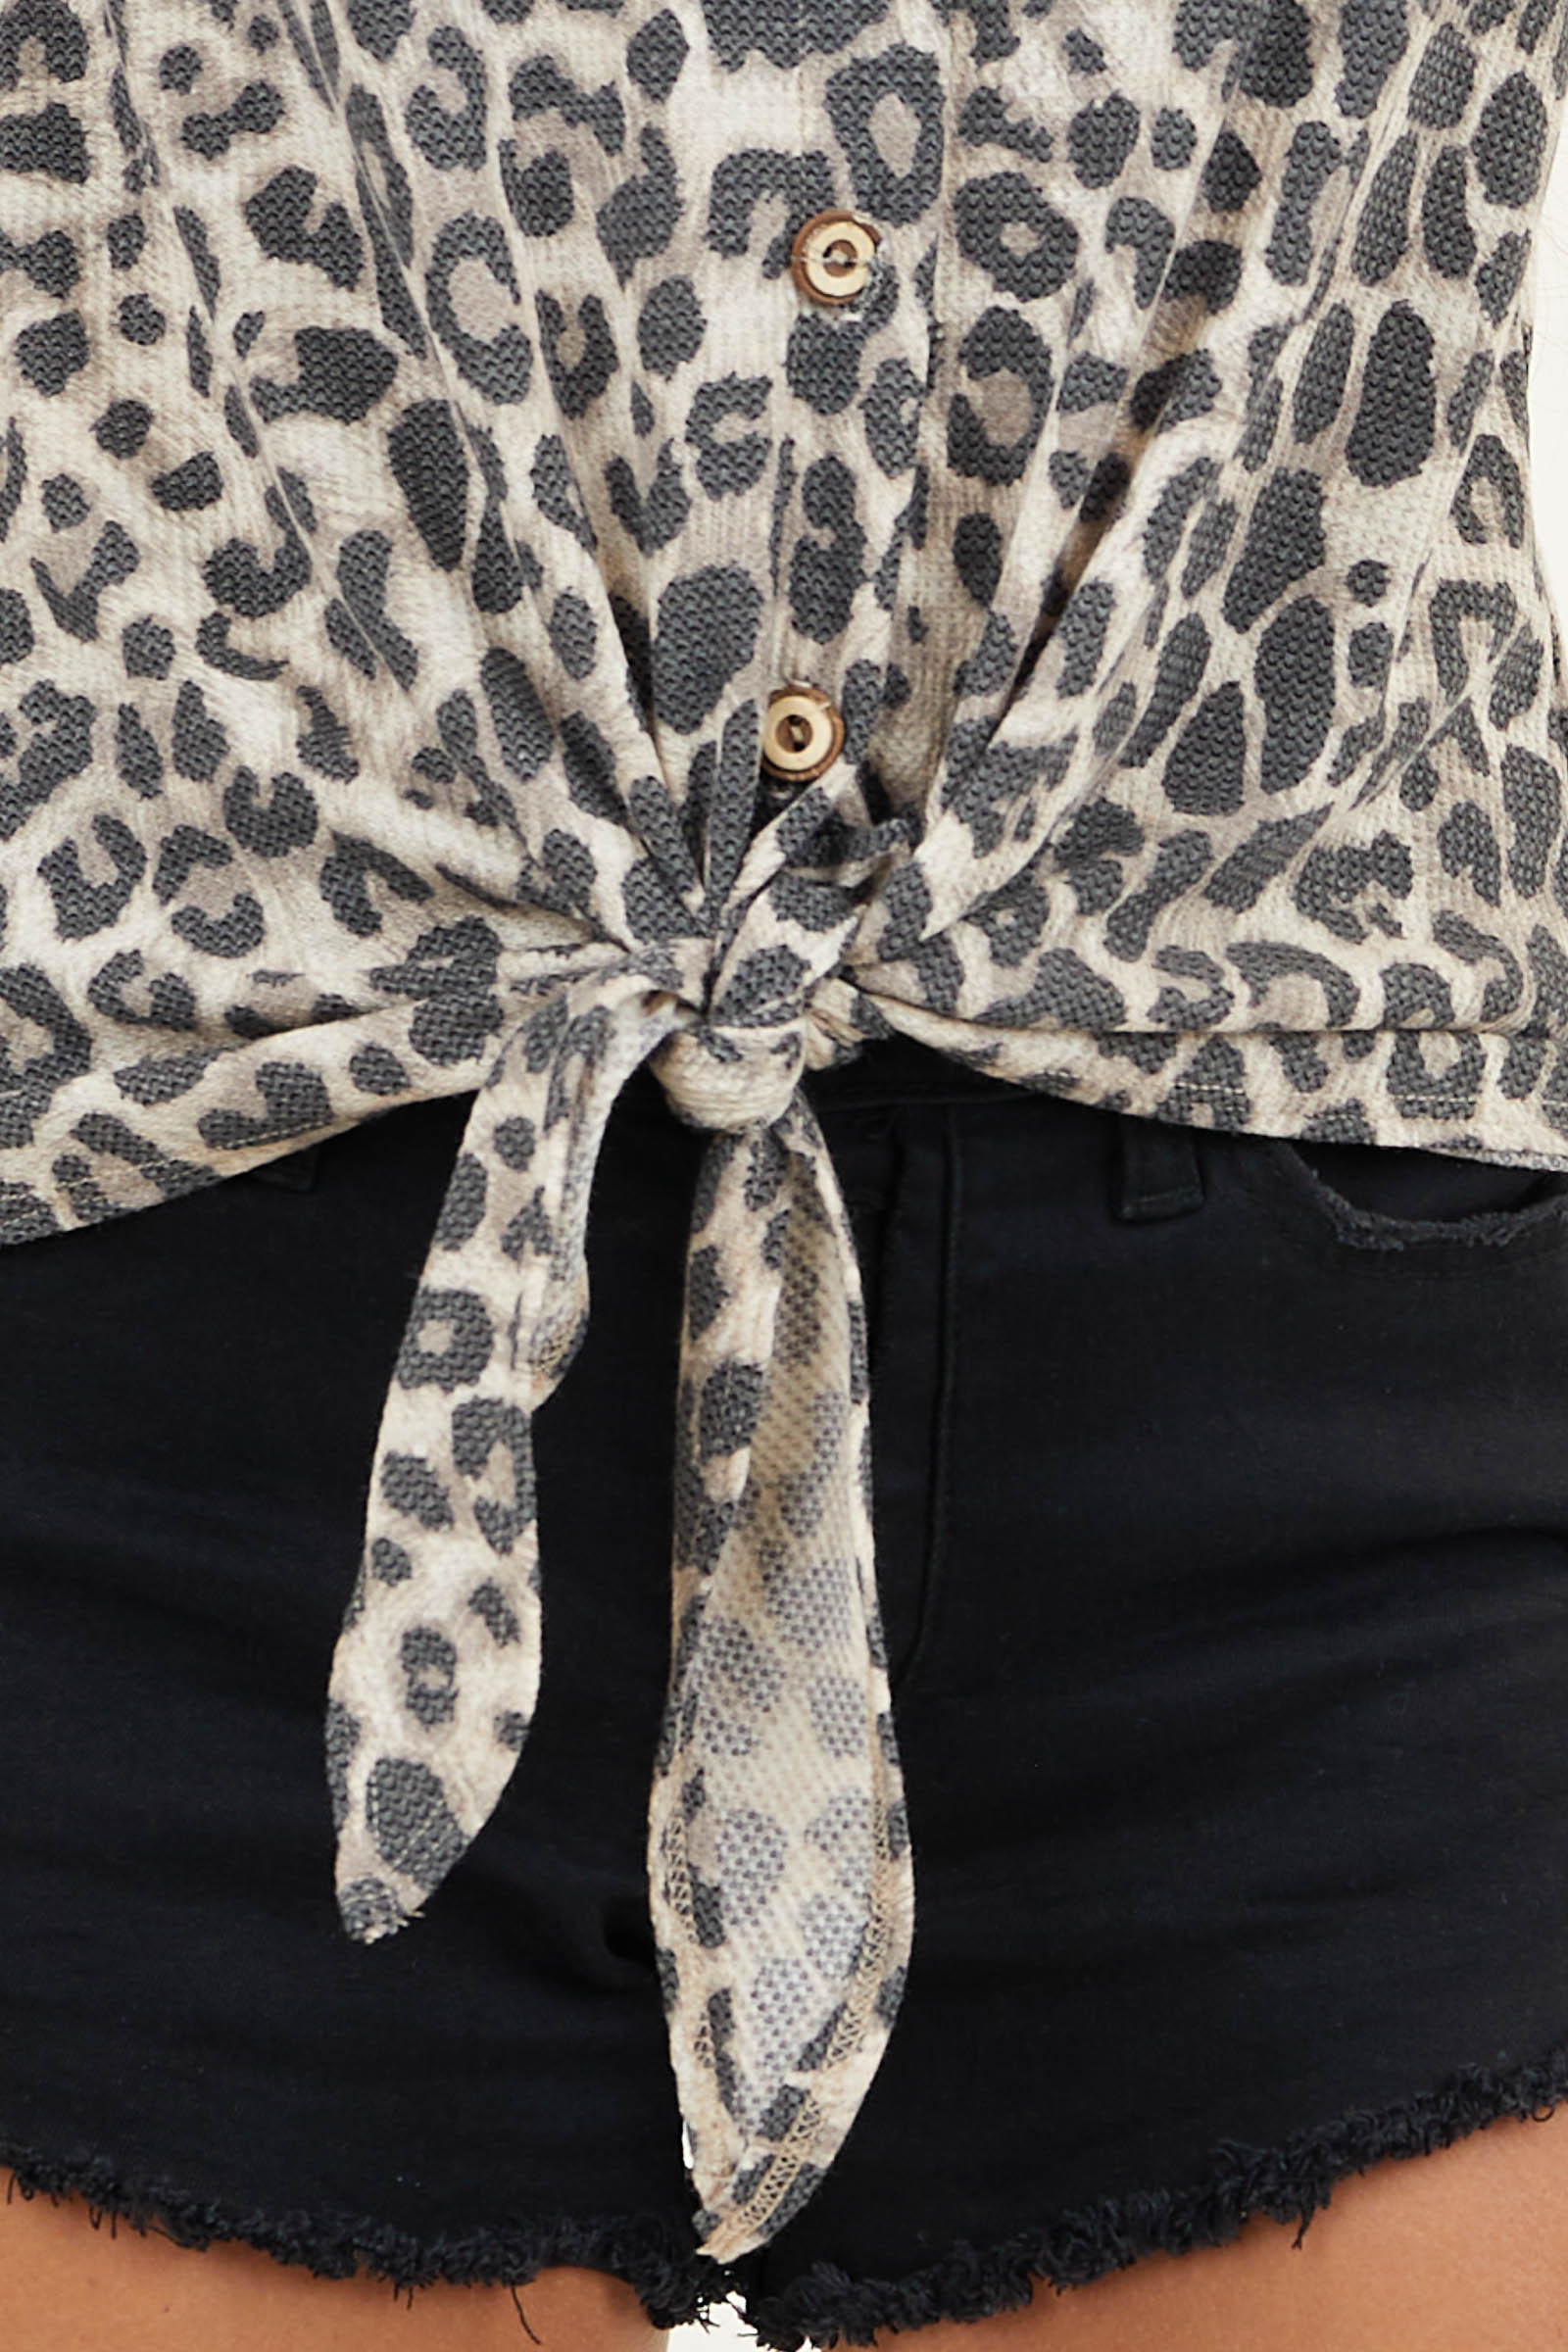 Beige Leopard Print Tank Top with Buttons and Front Tie